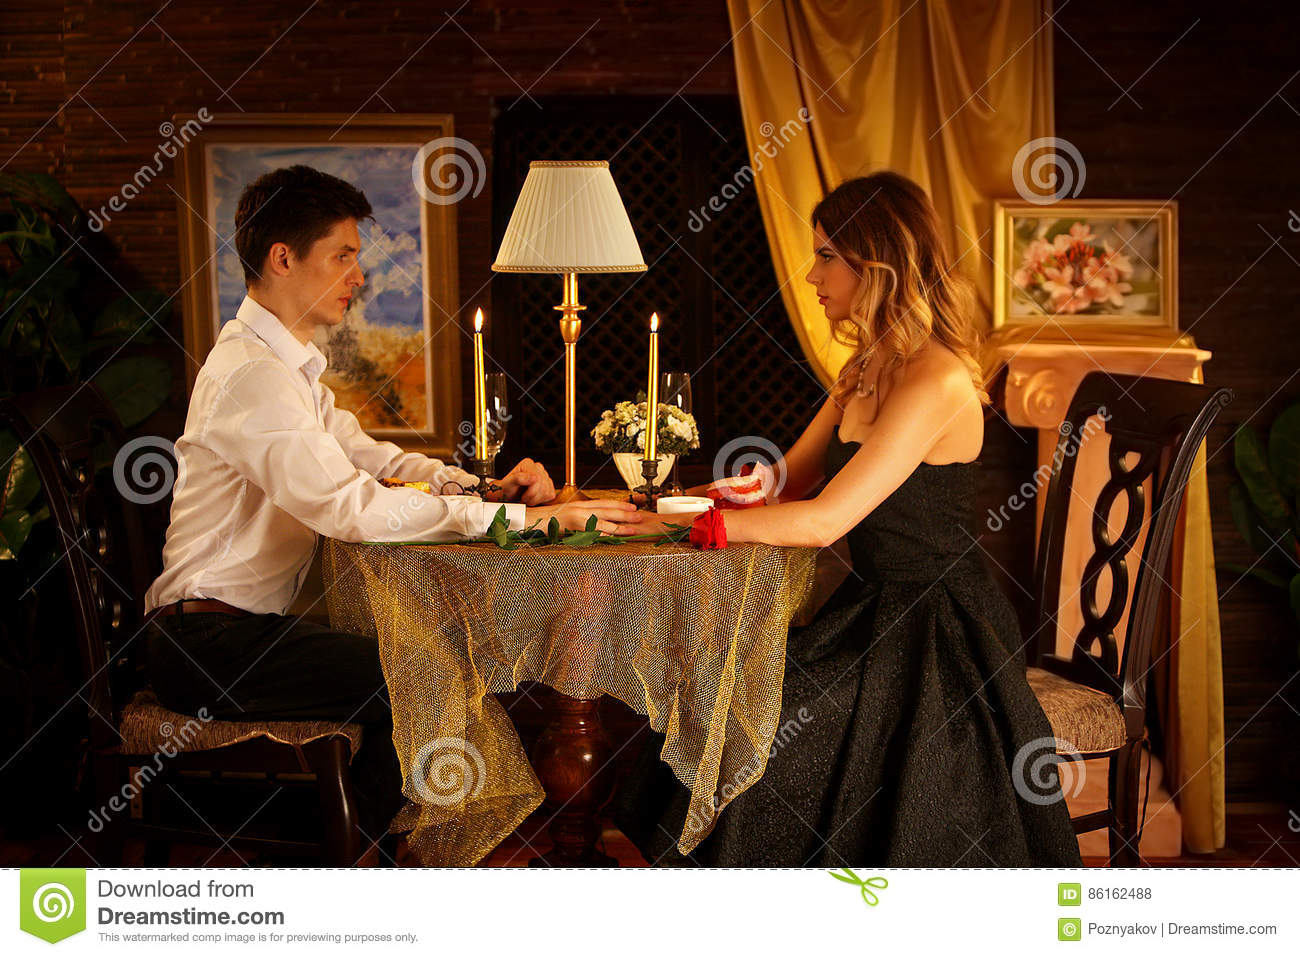 Download Romantic Dinner For Couple. Restaurant Interior Candlelight For  Romantic Date. Stock Photo